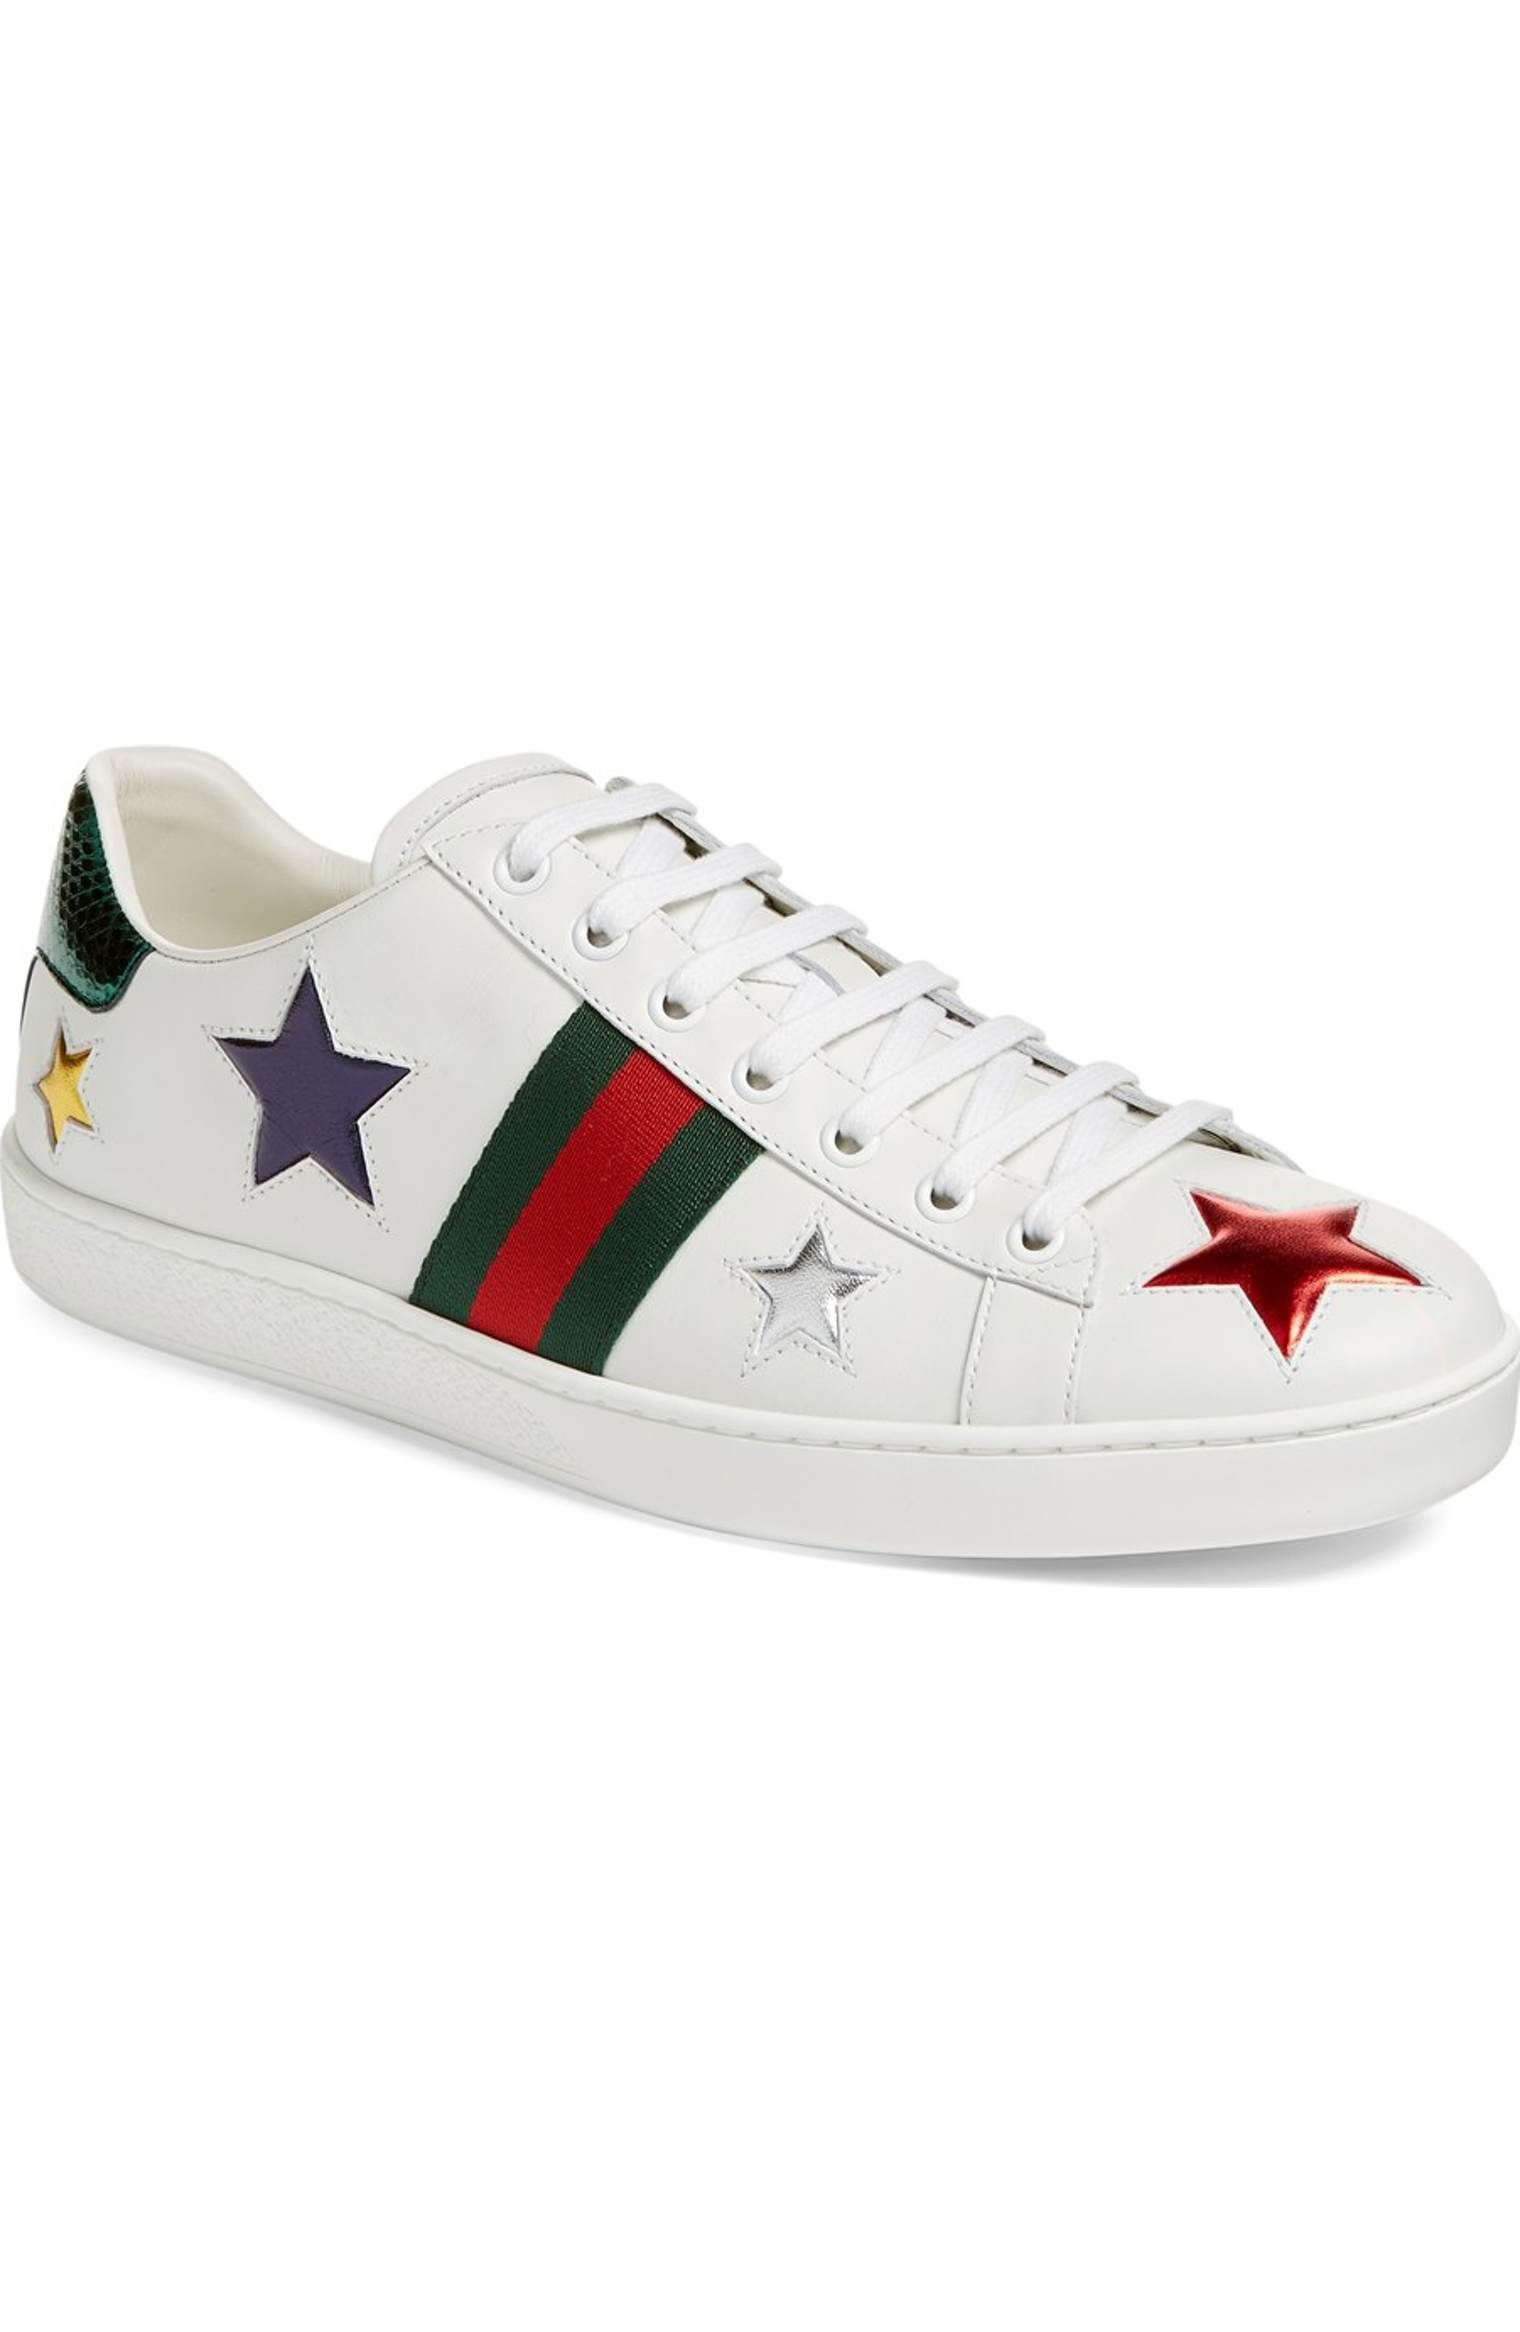 Main Image - Gucci New Ace Star Sneaker (Women)  7cc6554a52d